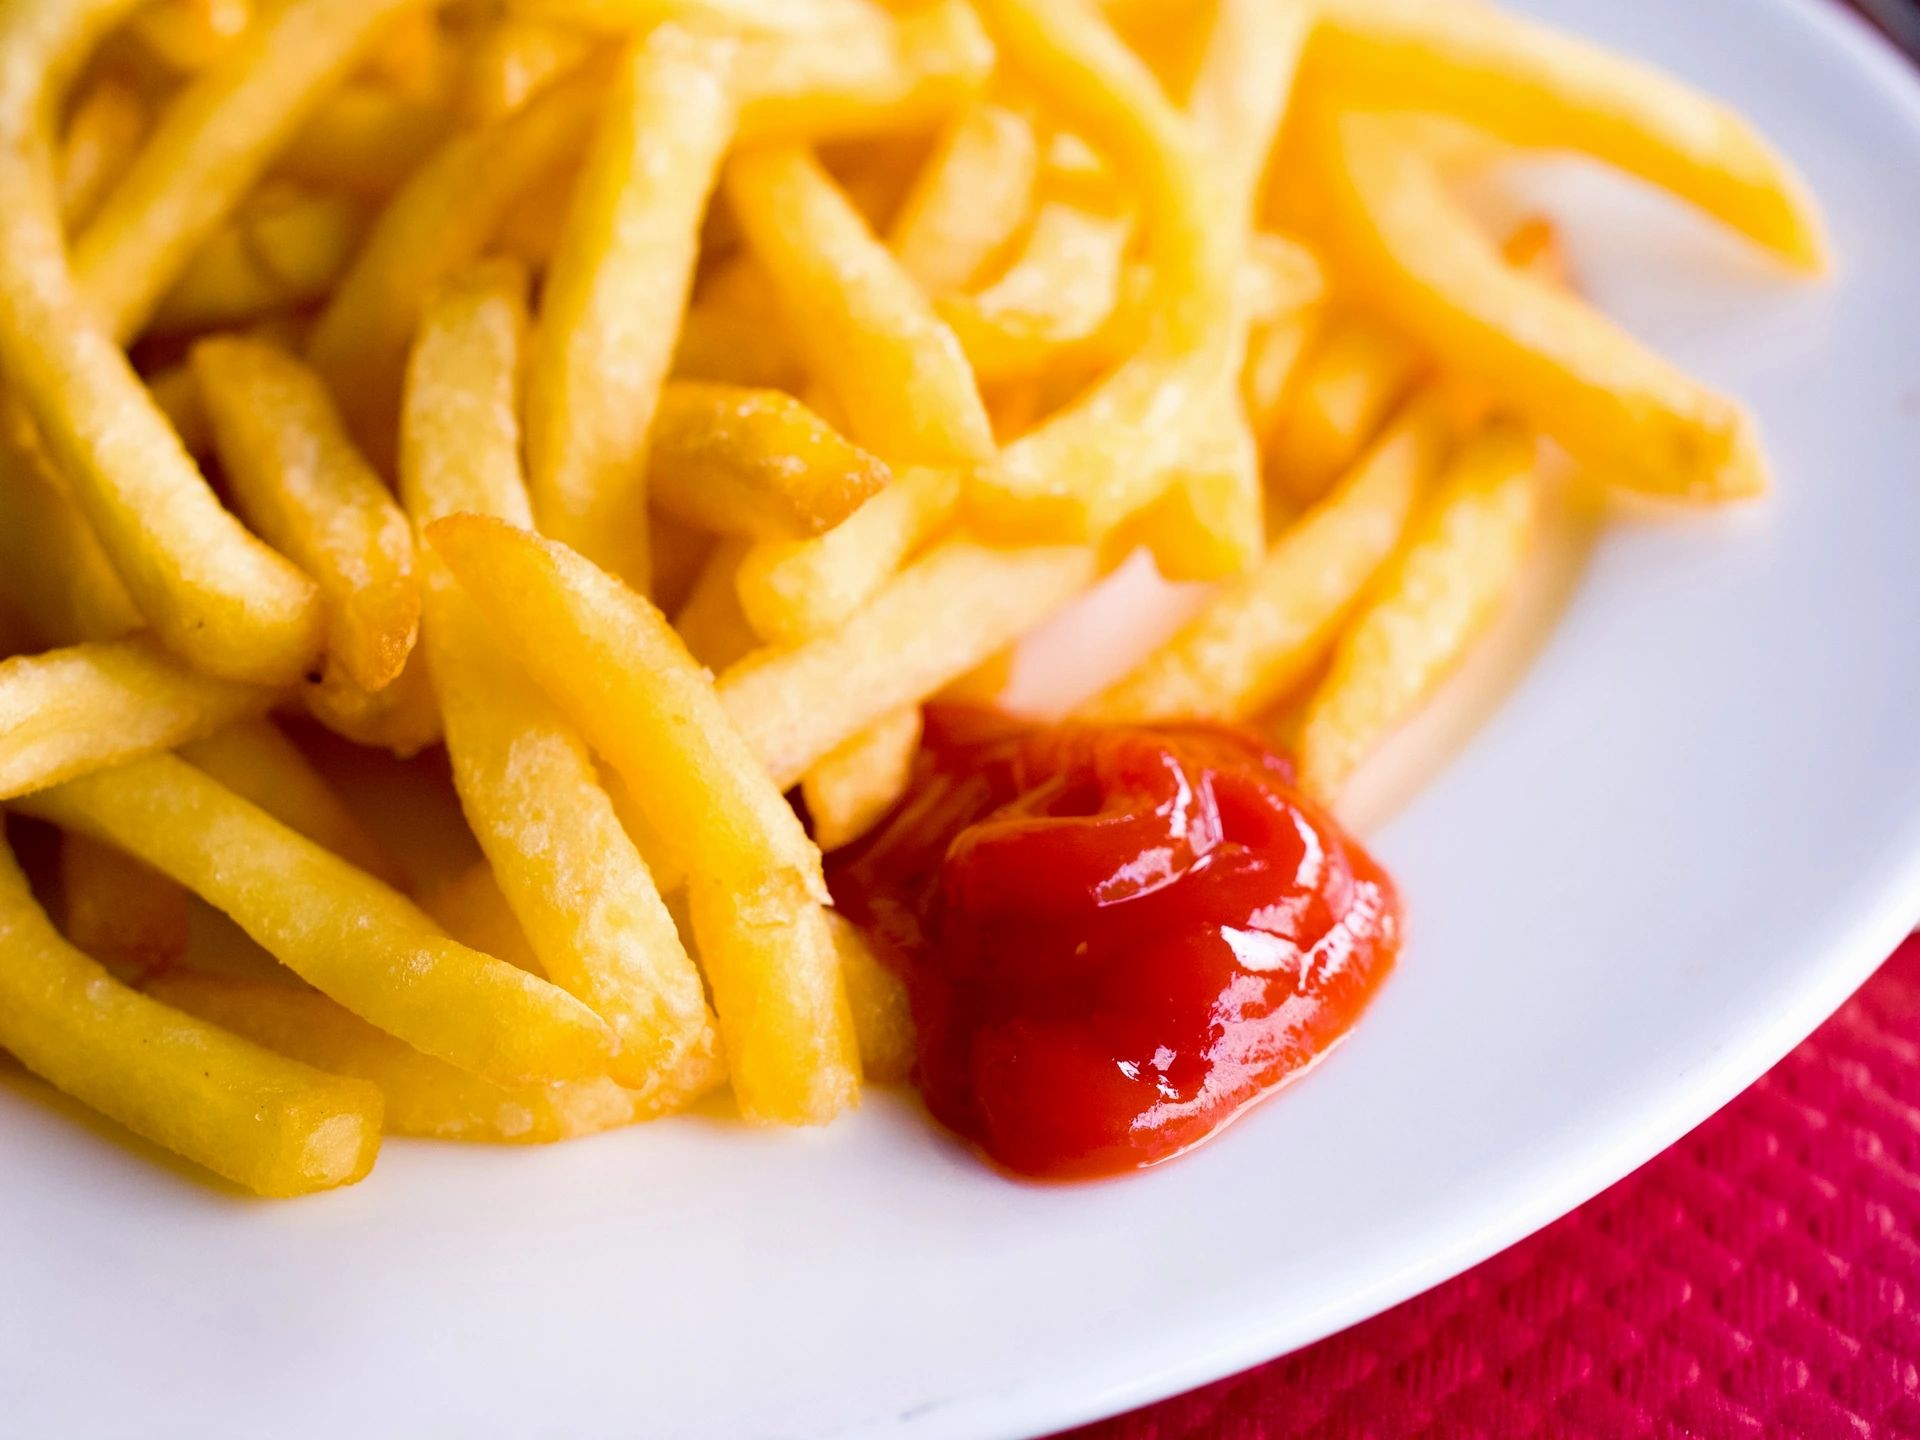 French fries on a plate with ketchup